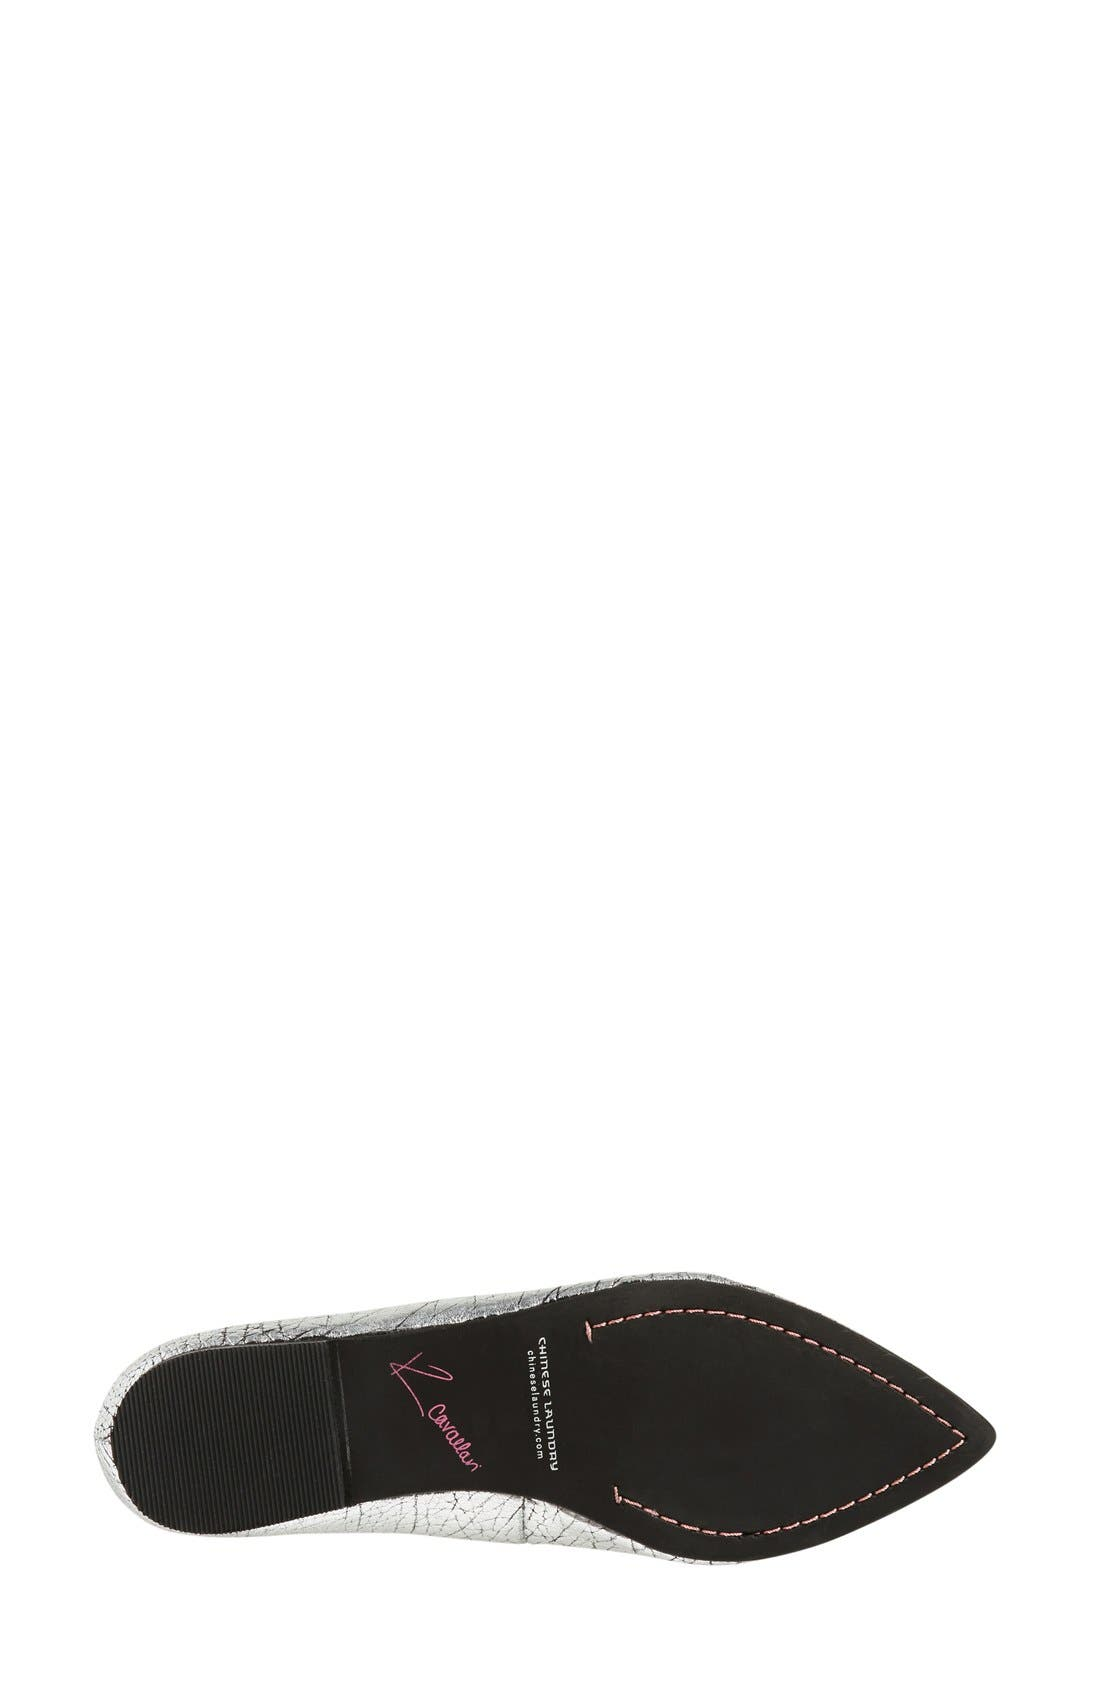 'Chandy' Loafer,                             Alternate thumbnail 4, color,                             040